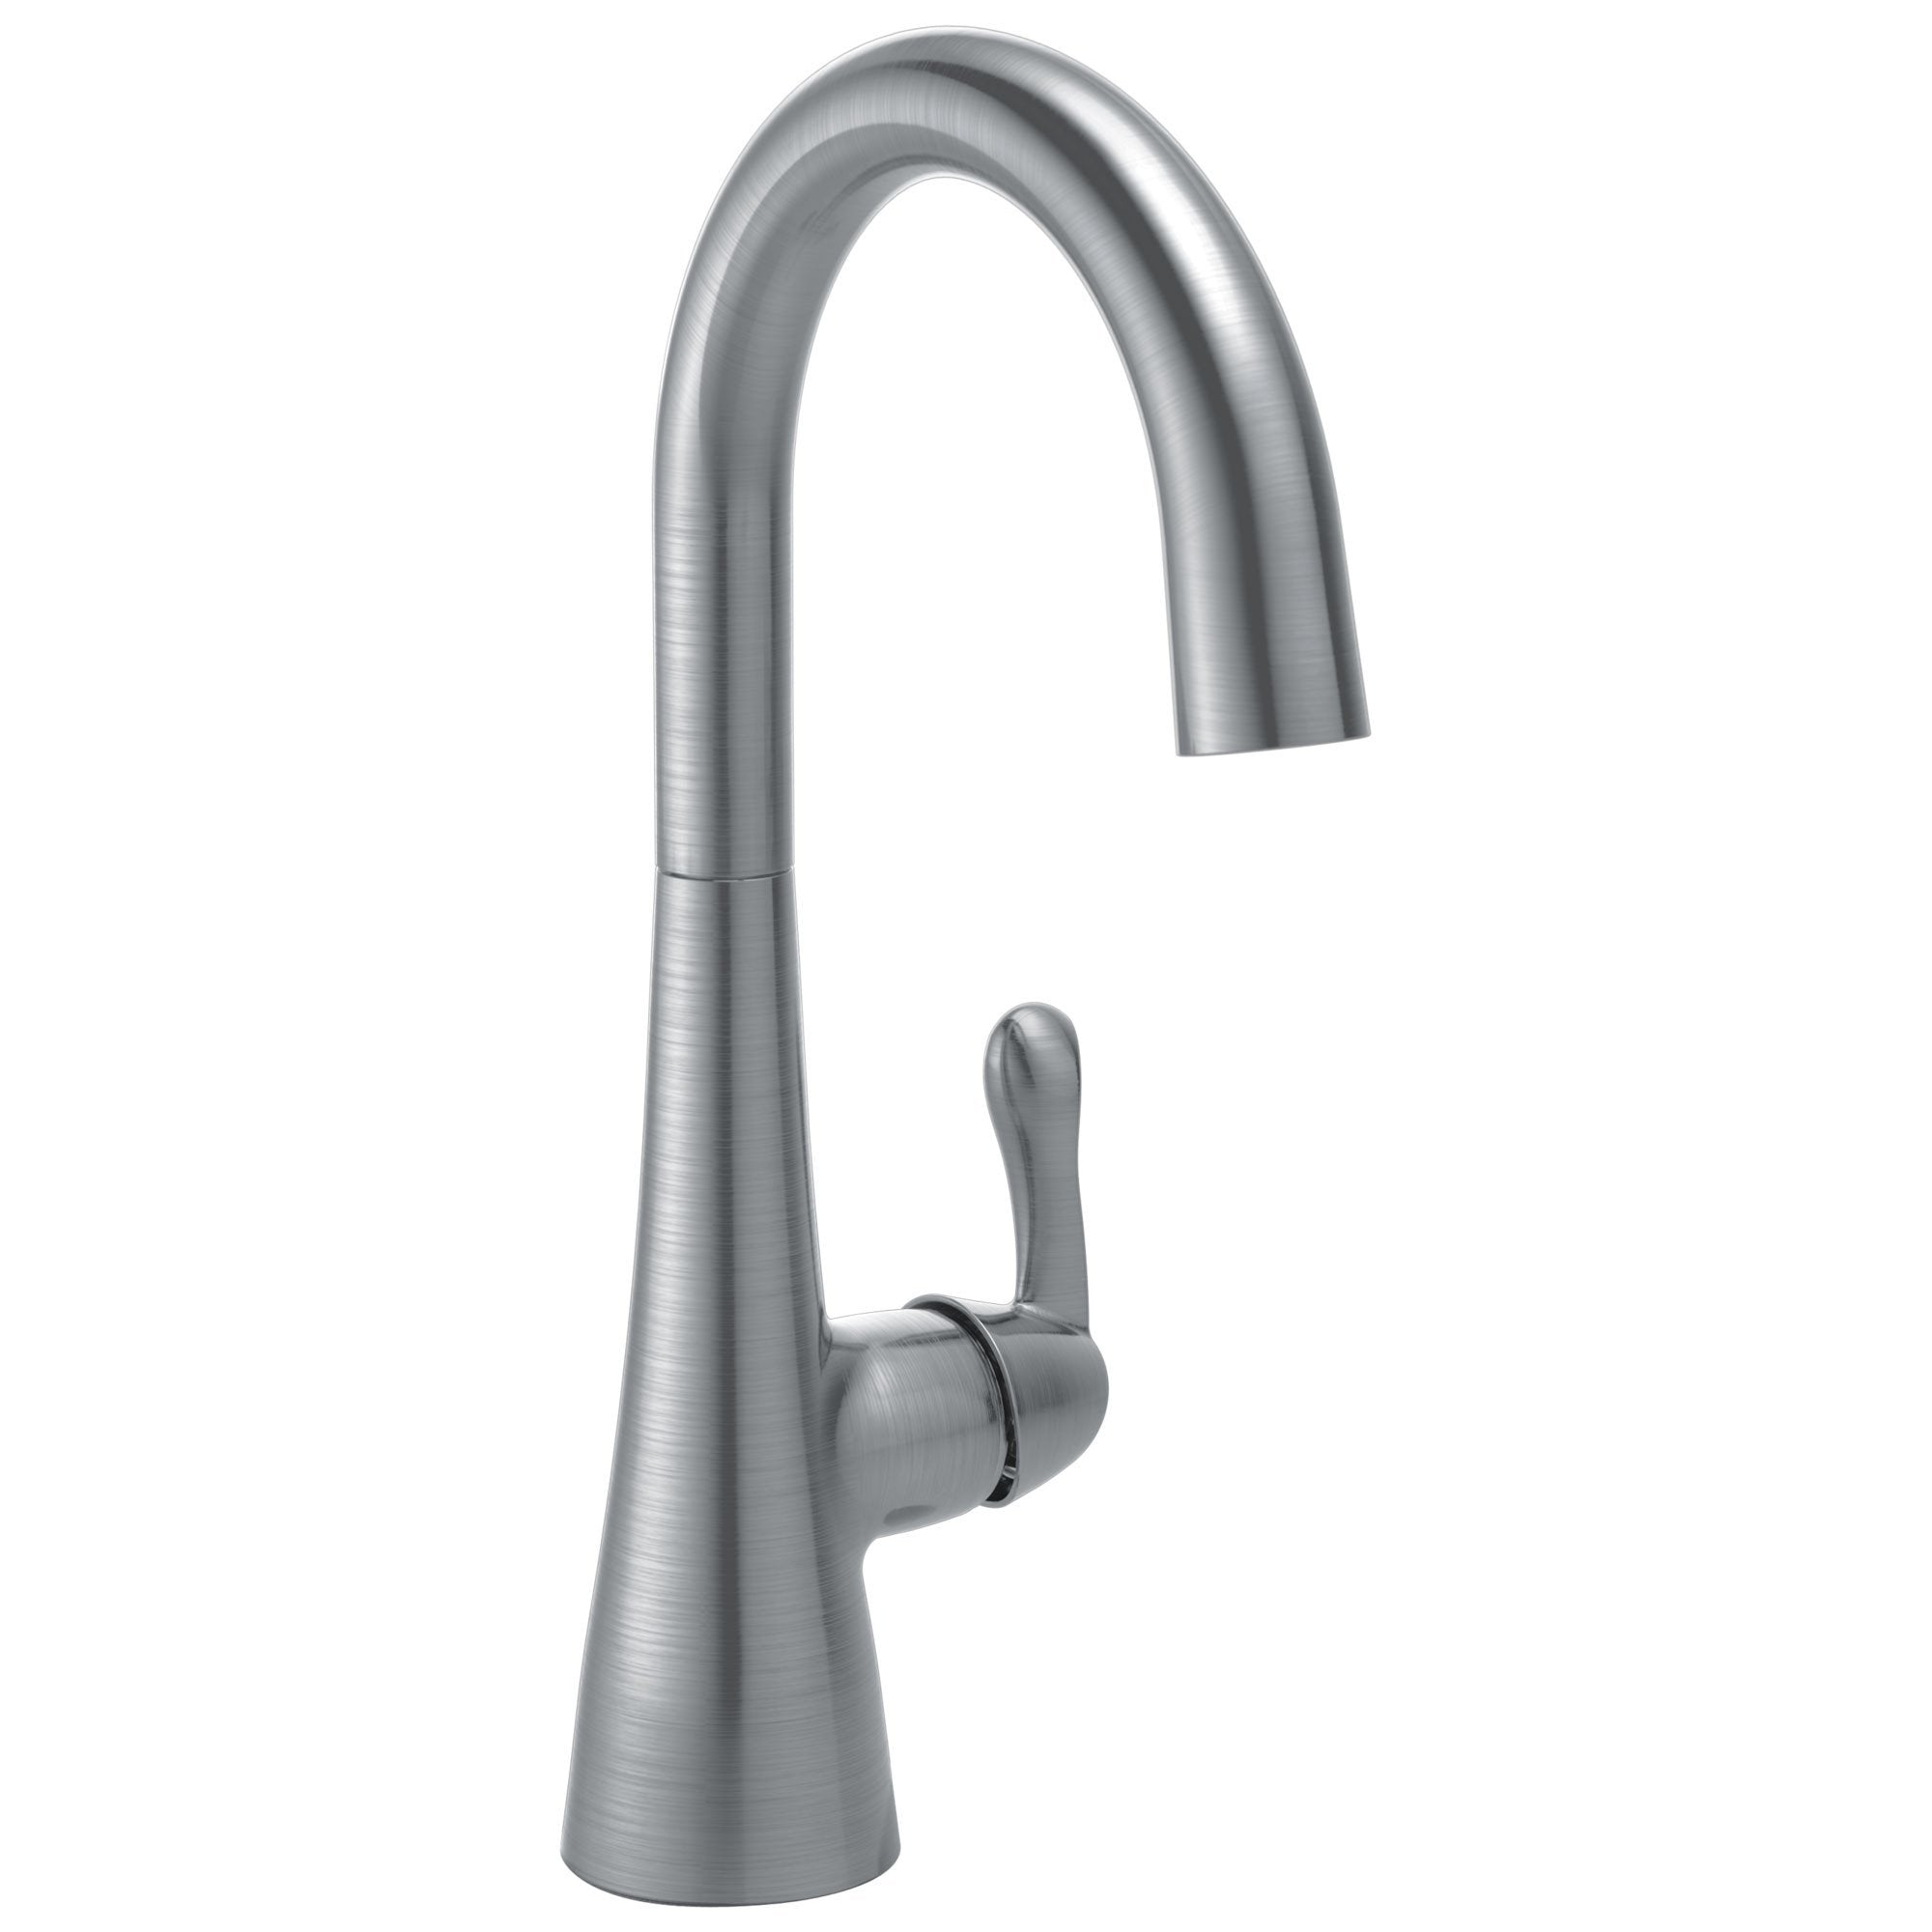 Delta Arctic Stainless Steel Finish Single Lever Handle 360-degree Swivel Spout Contemporary Water Efficient Bar Sink Faucet 729154